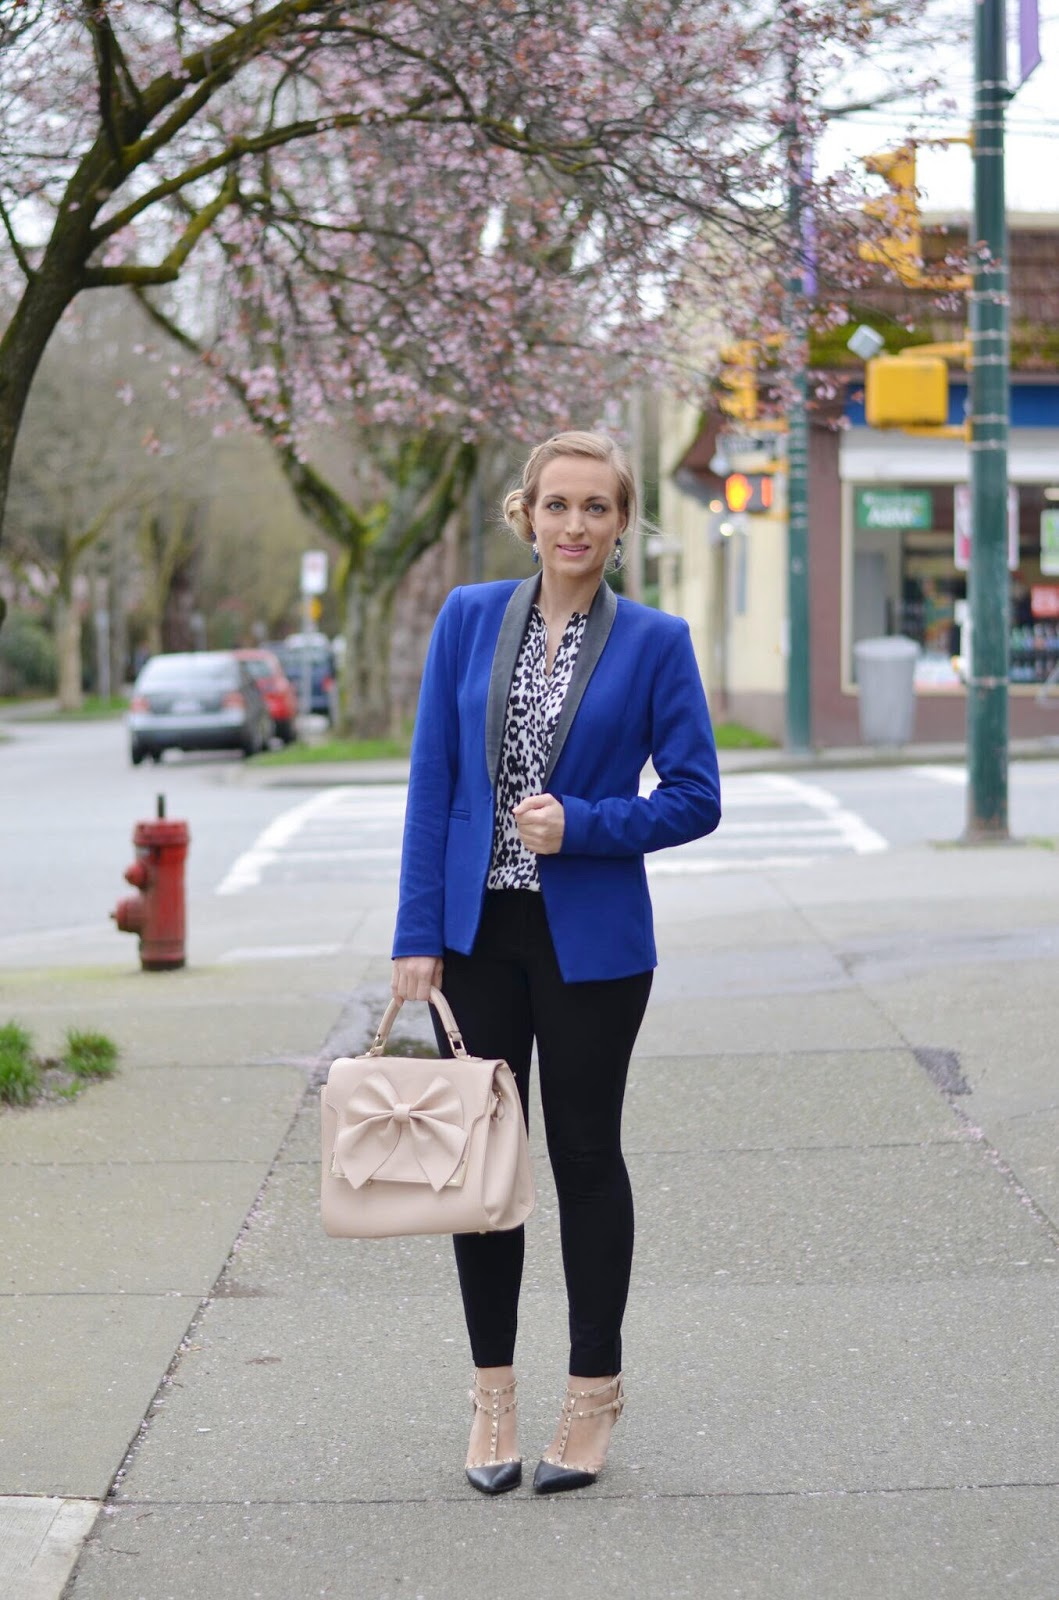 cobalt blue blazer and snow leopard top outfit